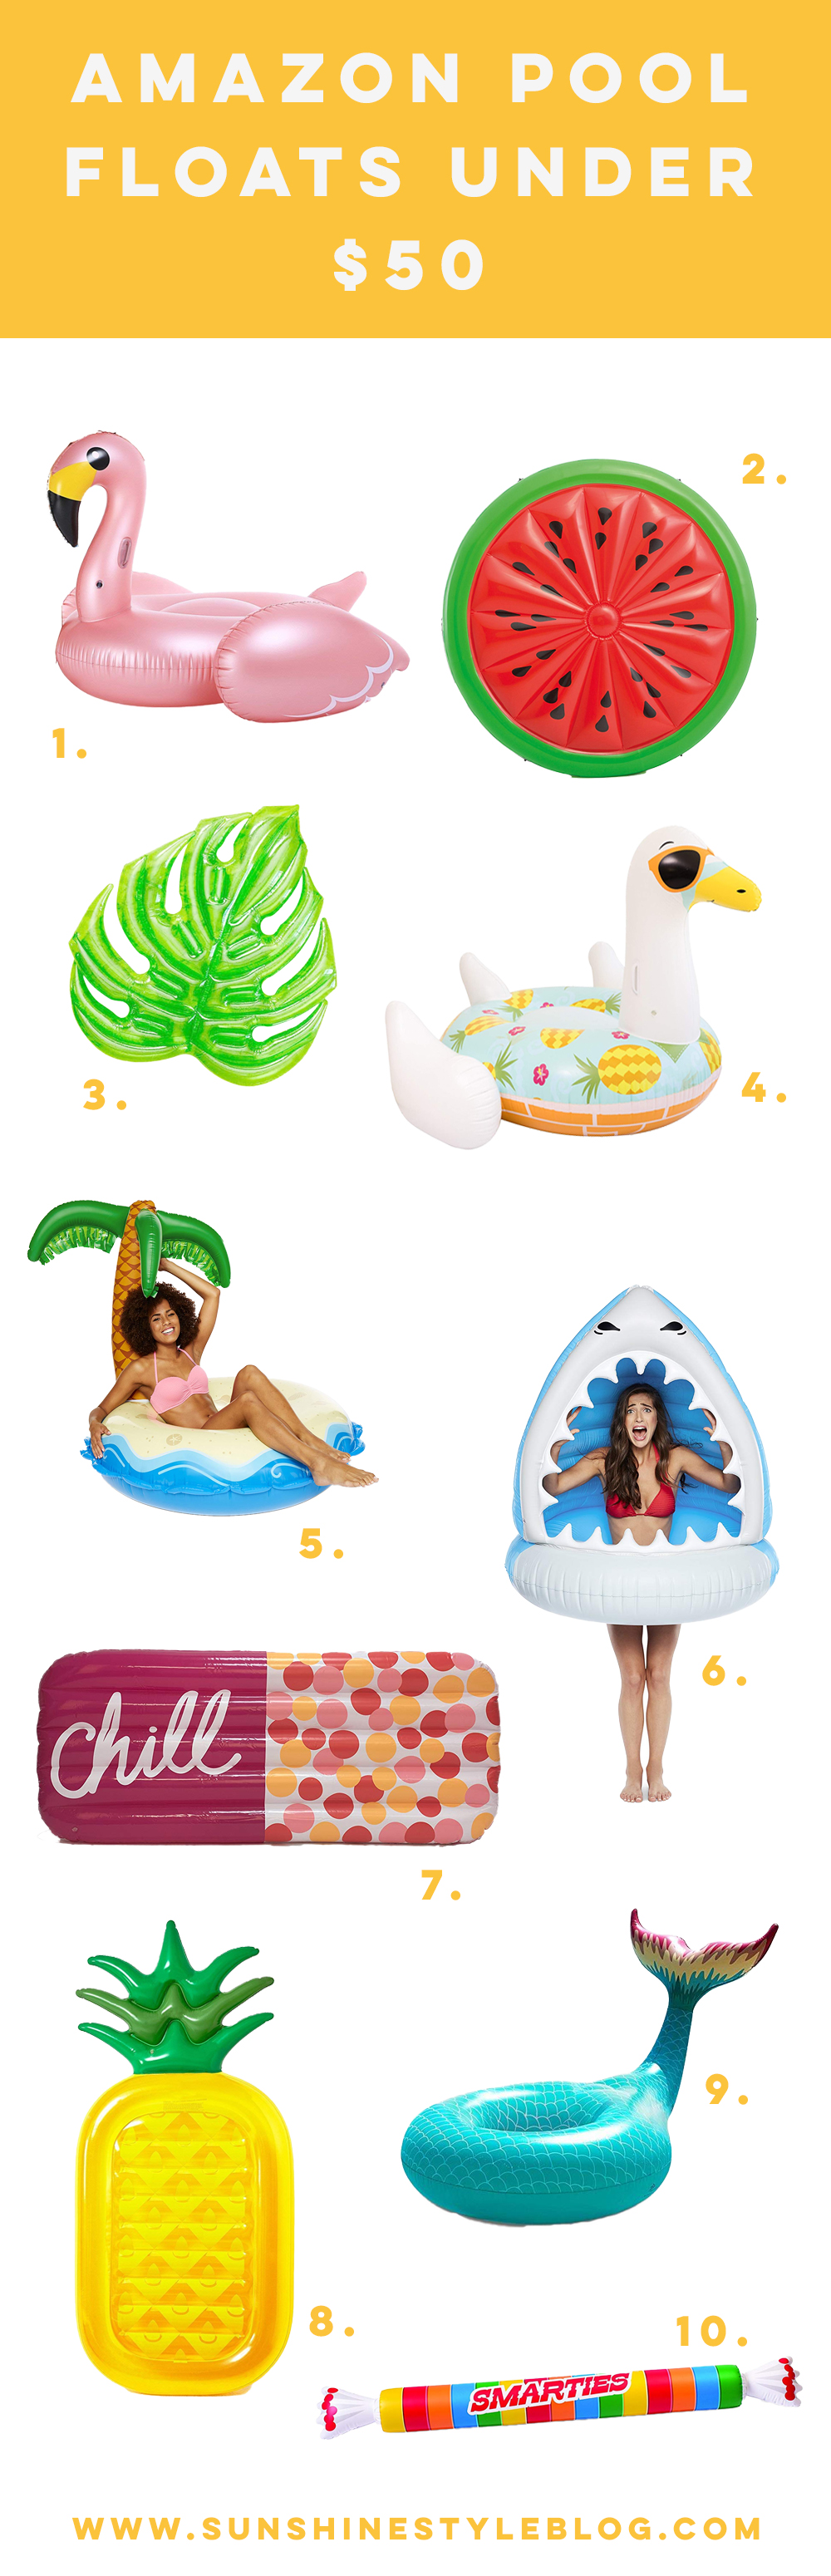 Amazon Pool Floats Under $50 | Summer Pool Floats | Flamingo Pool Float | Best Pool Floats 2019 - Sunshine Style